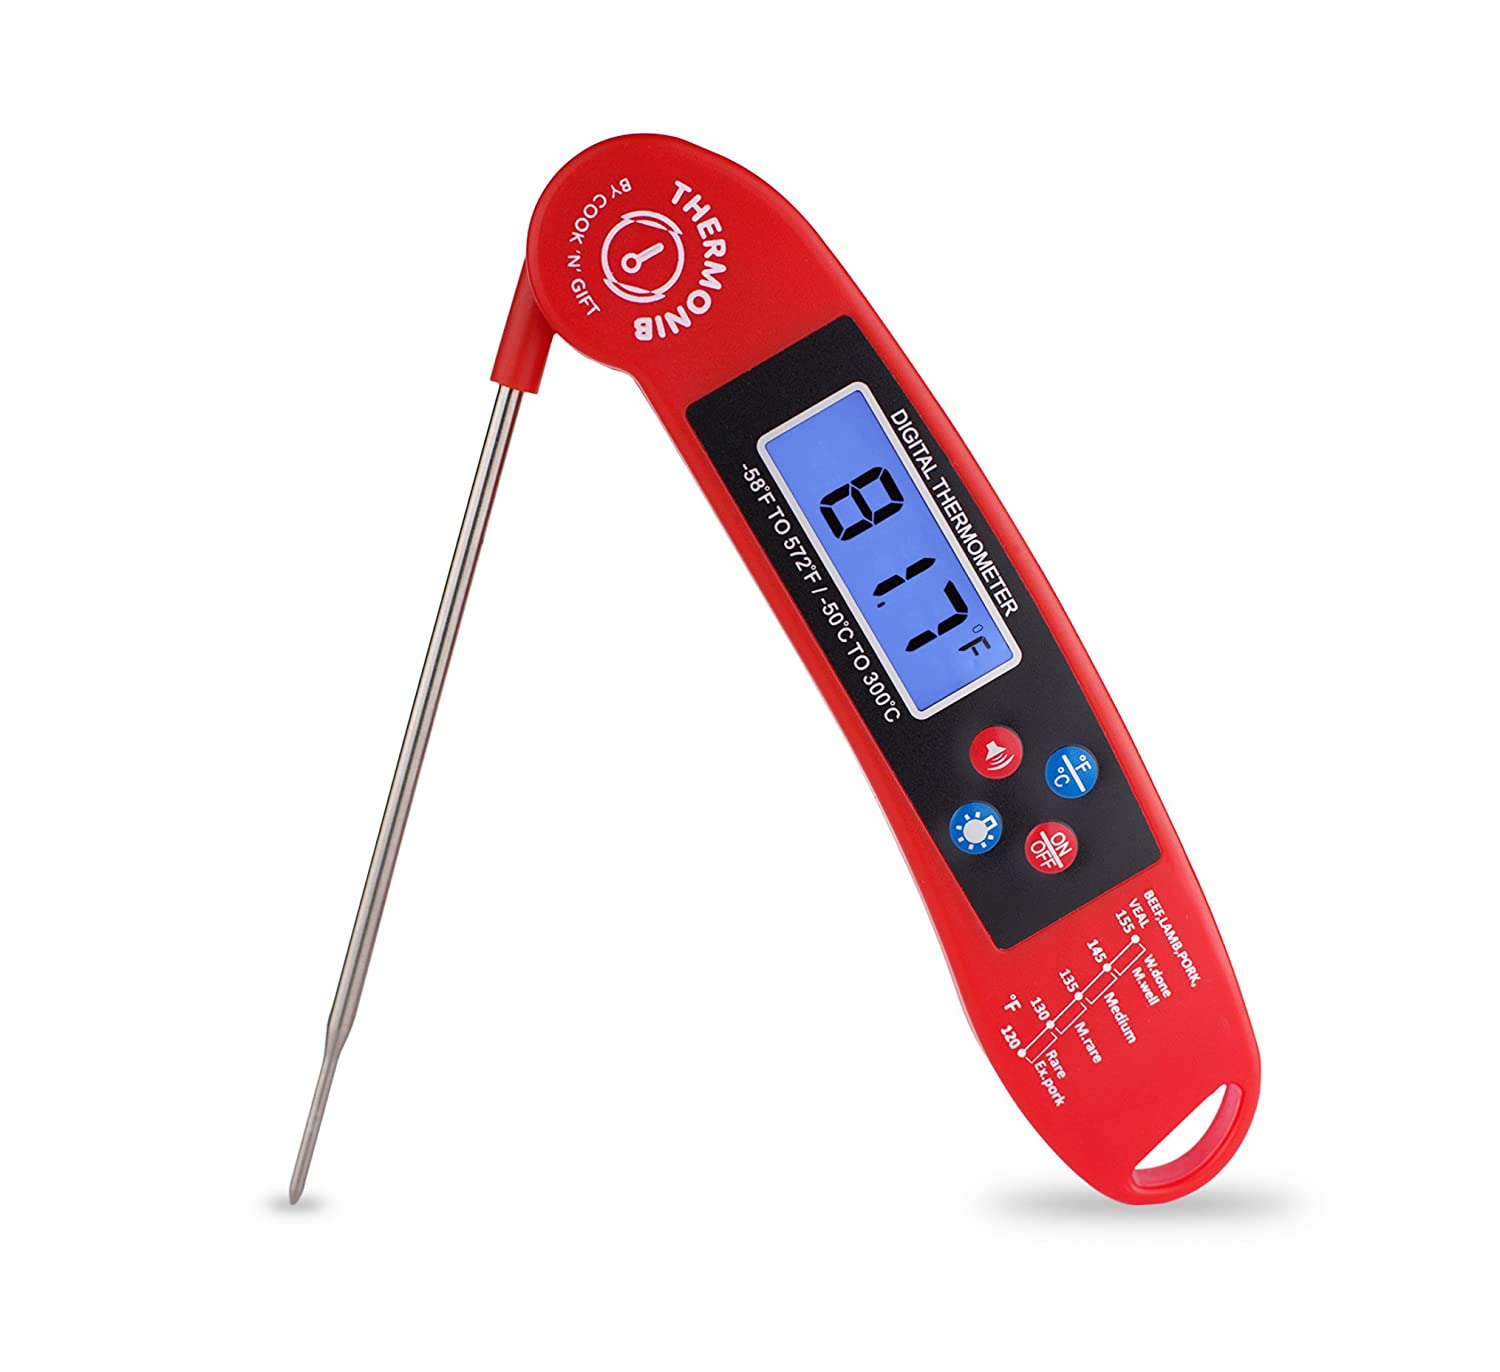 Cook 'n' Gift Thermonib Digital Instant Read Cooking Thermometer Probe - Red